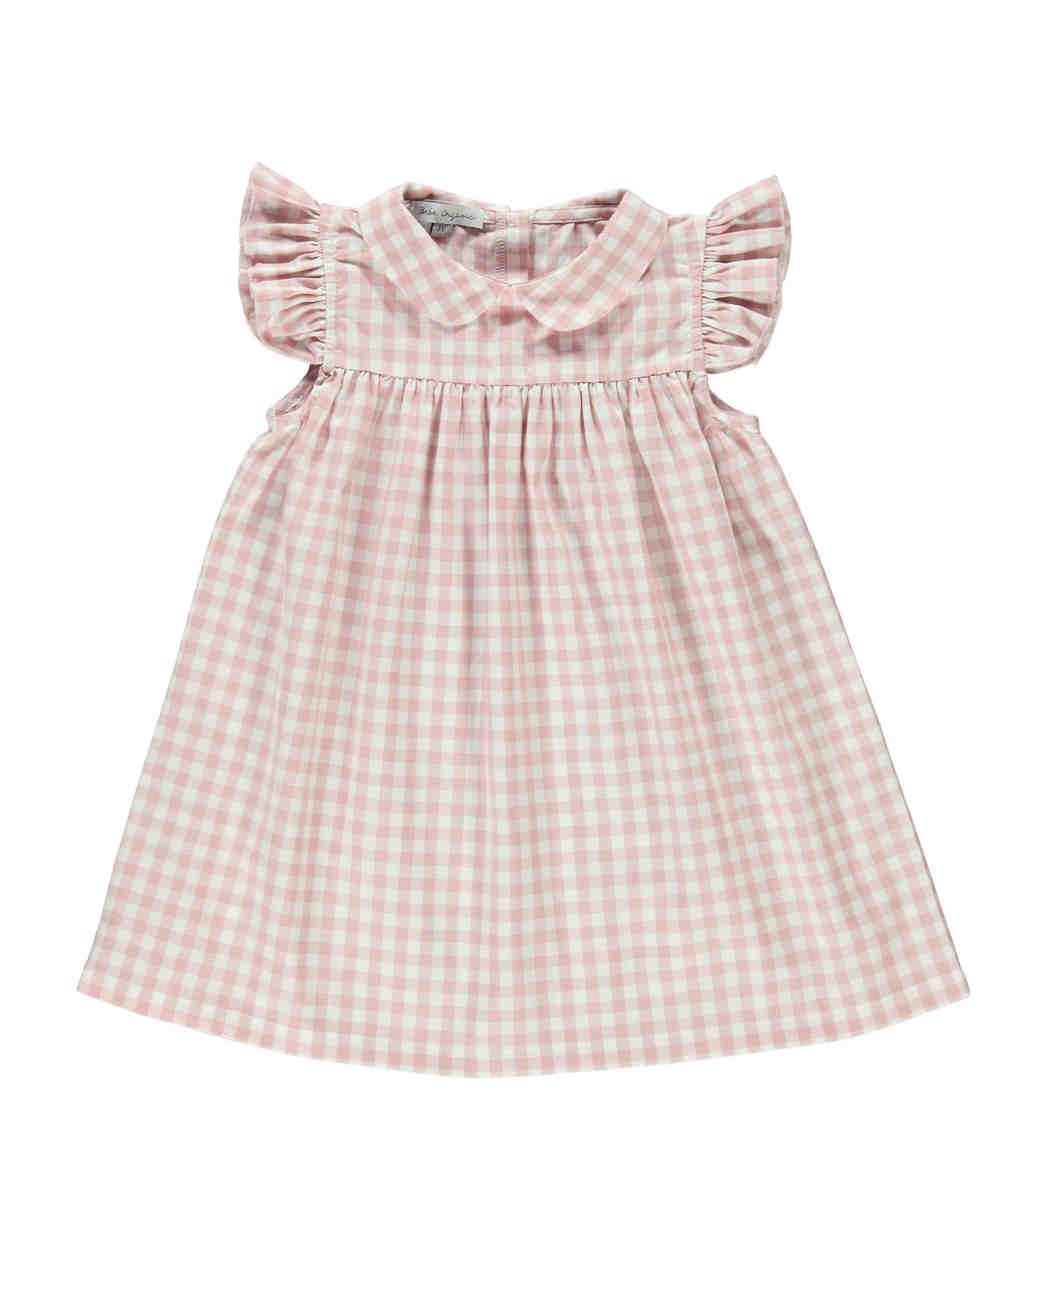 summer flower girl outfit pink checkered dress